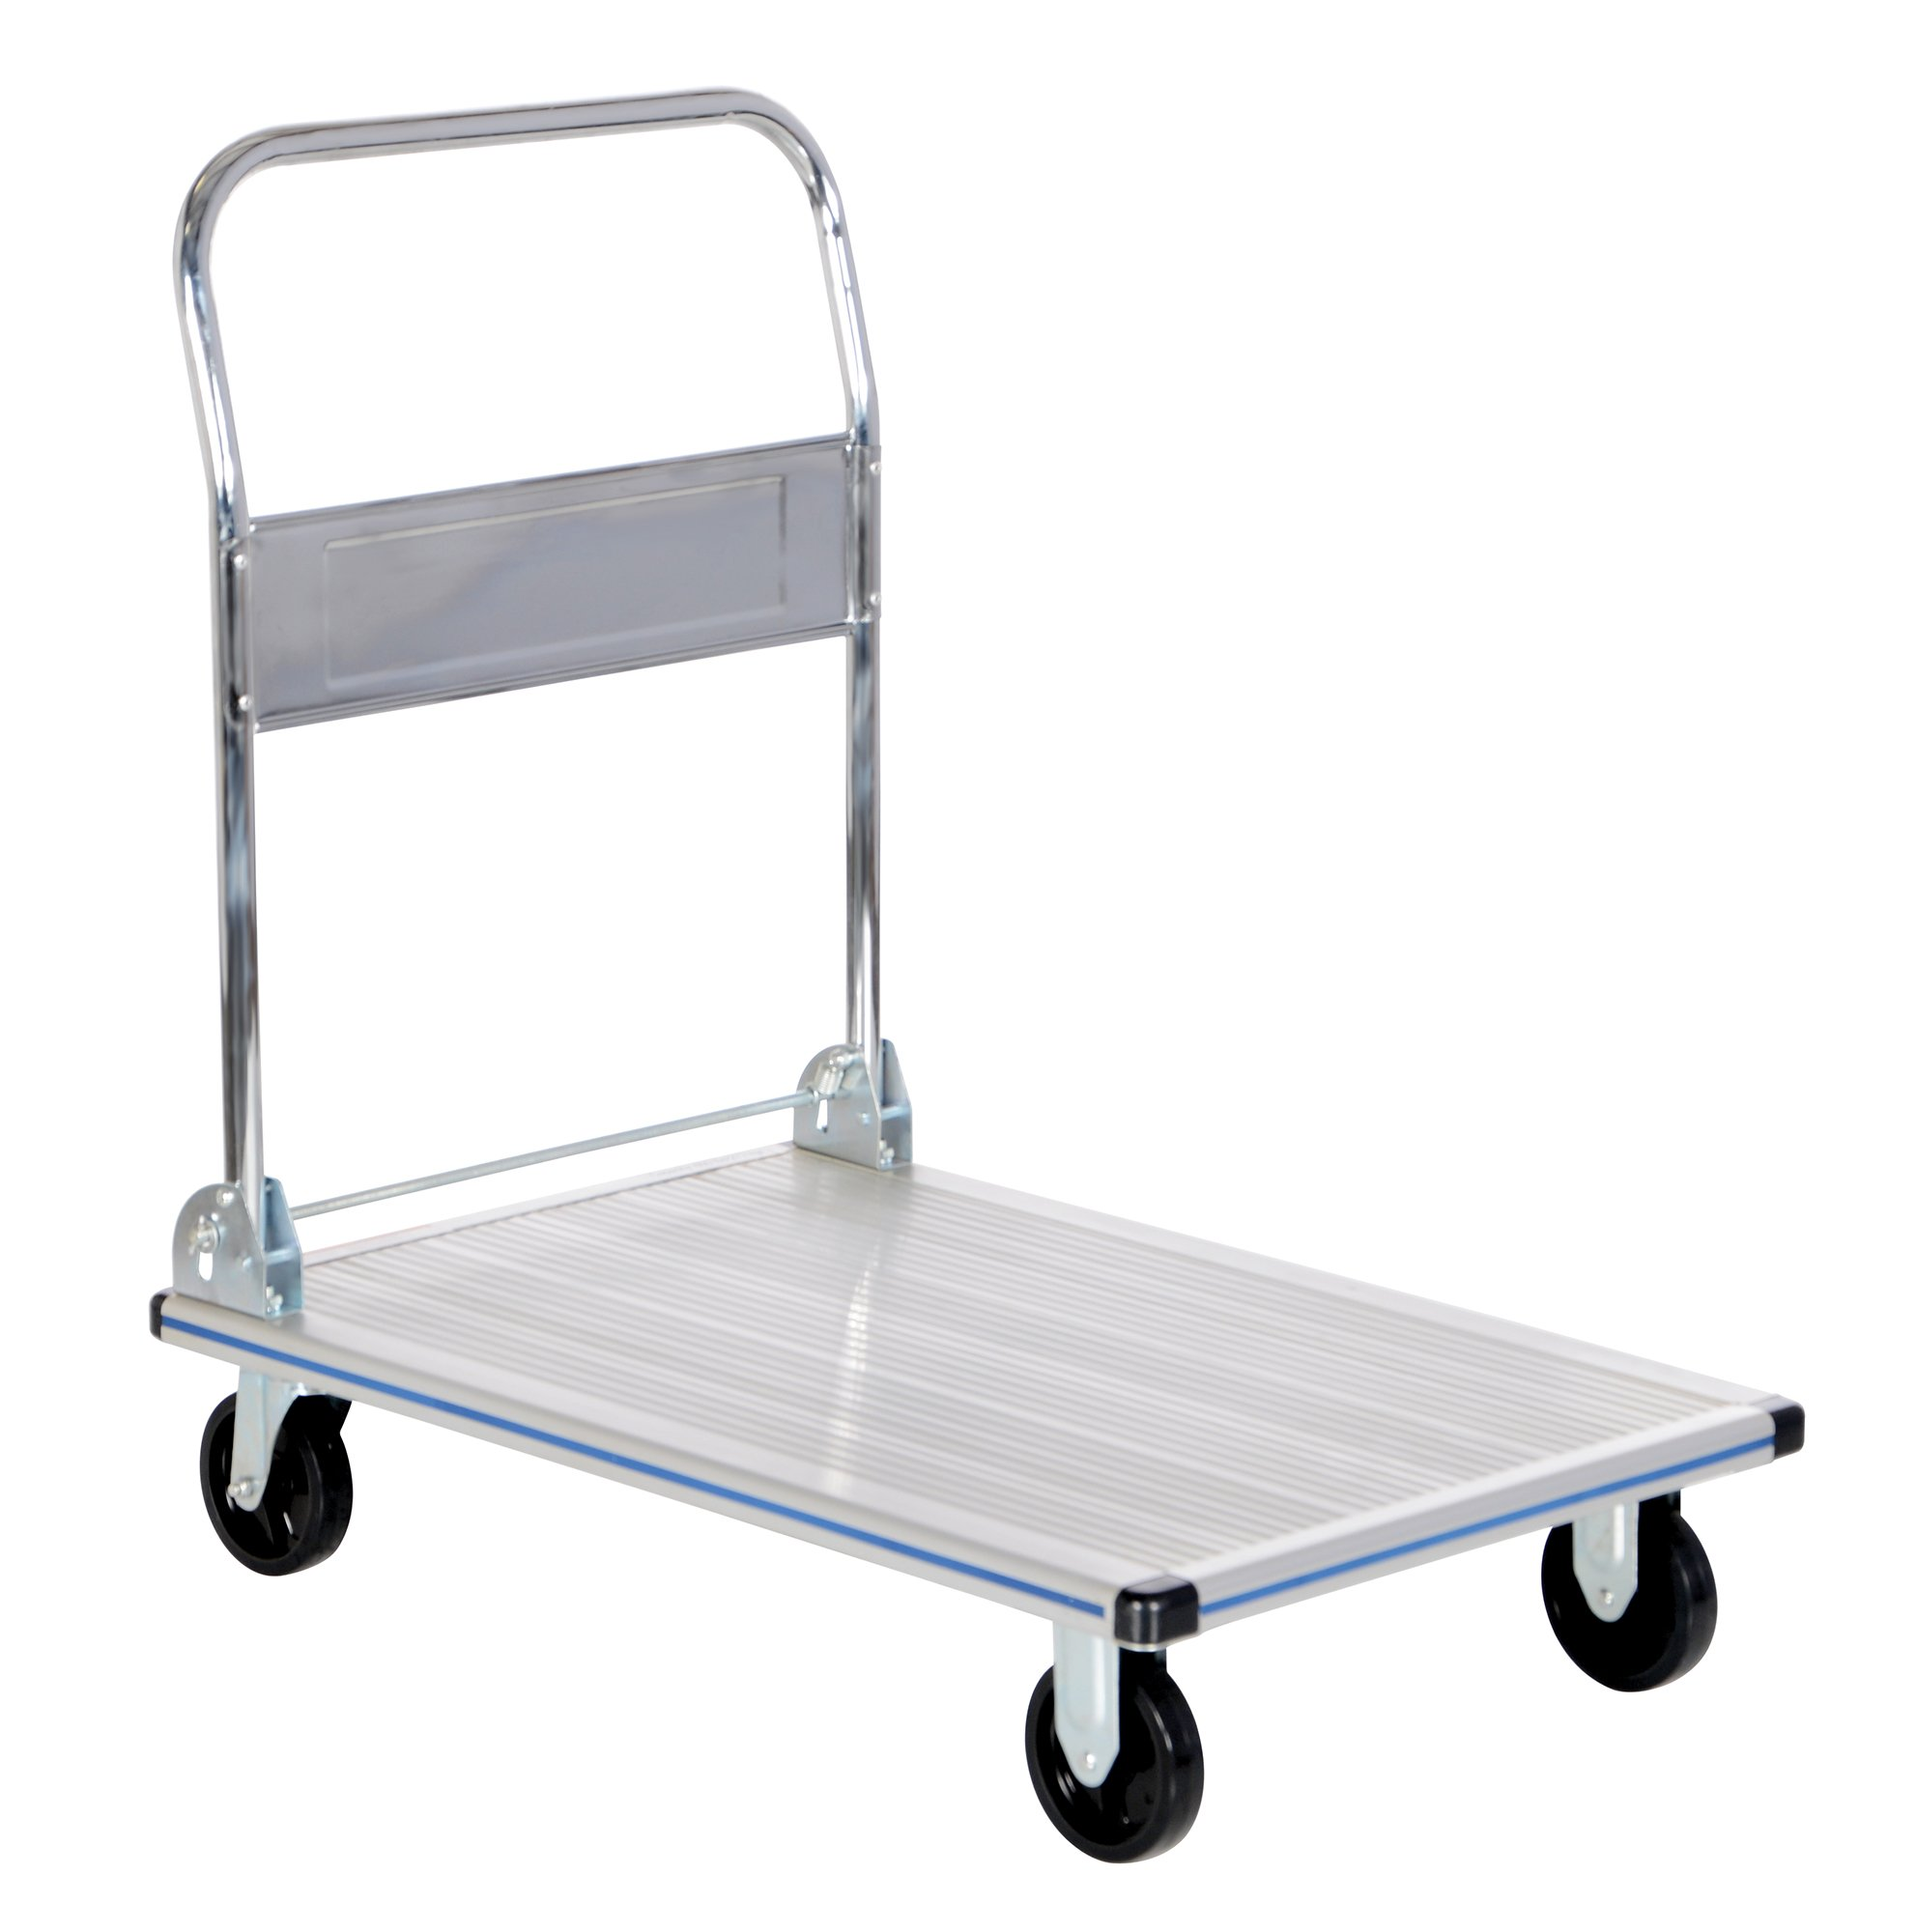 Vestil AFT-36-NM Aluminum Folding Platform Truck with Single Handle and 5'' Non-Marking Polyurethane Casters, 600 lbs Capacity, 36'' Length x 24'' Width x 8-3/8'' Height